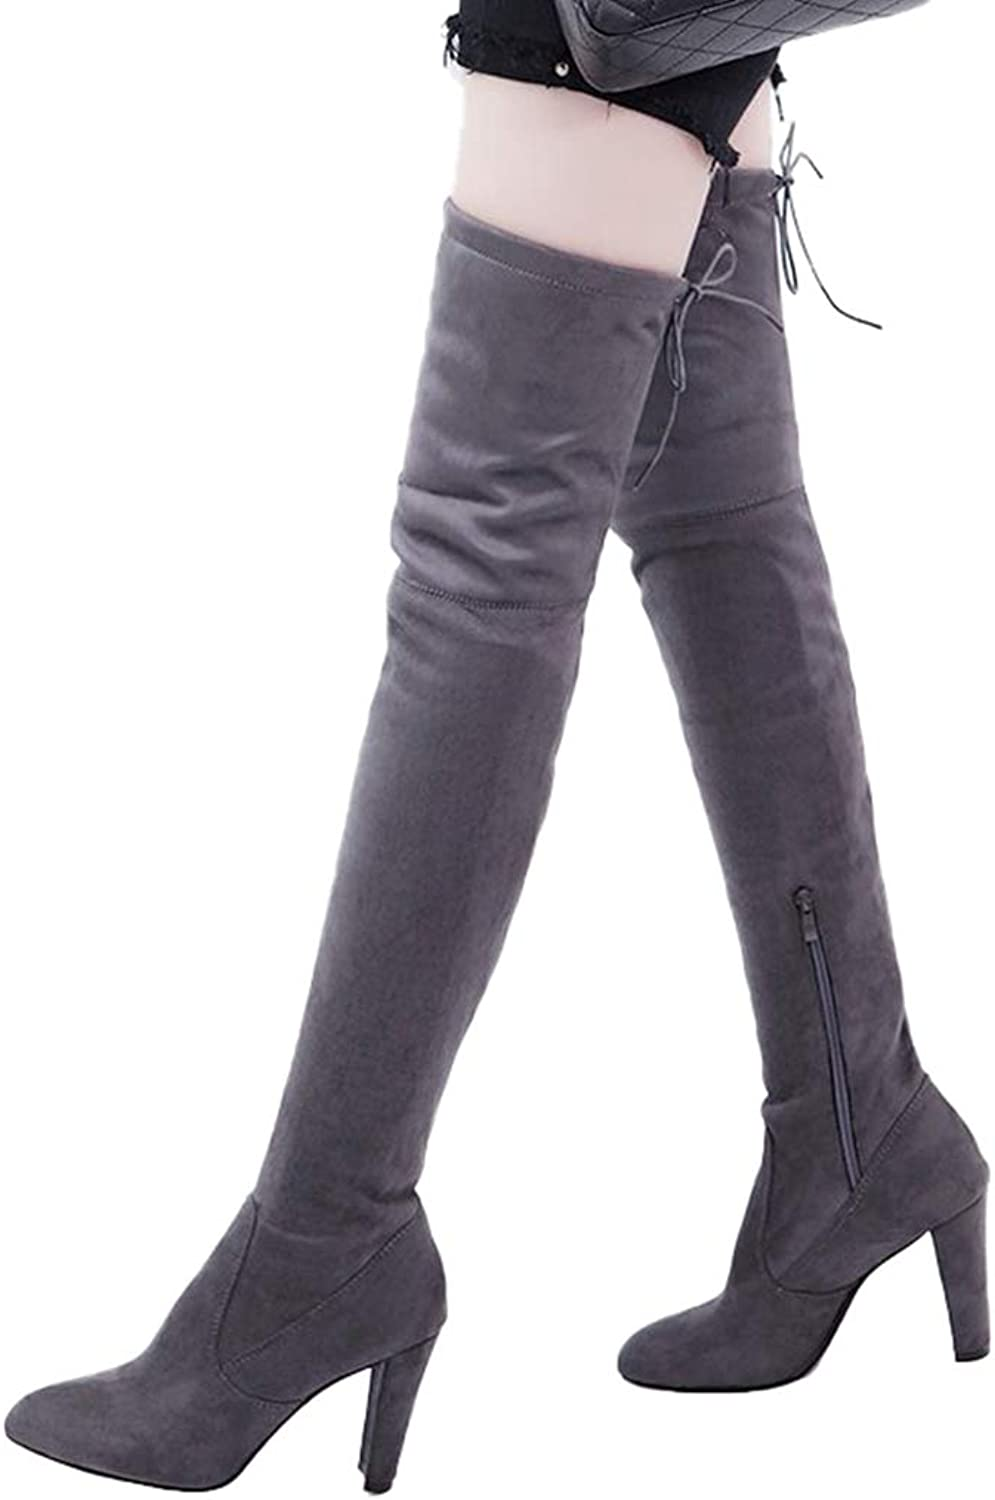 Women Boots Winter Over The Knee shoes Zipper Tall Canister High Heels Pumps Plus Velvet shoes with Fur